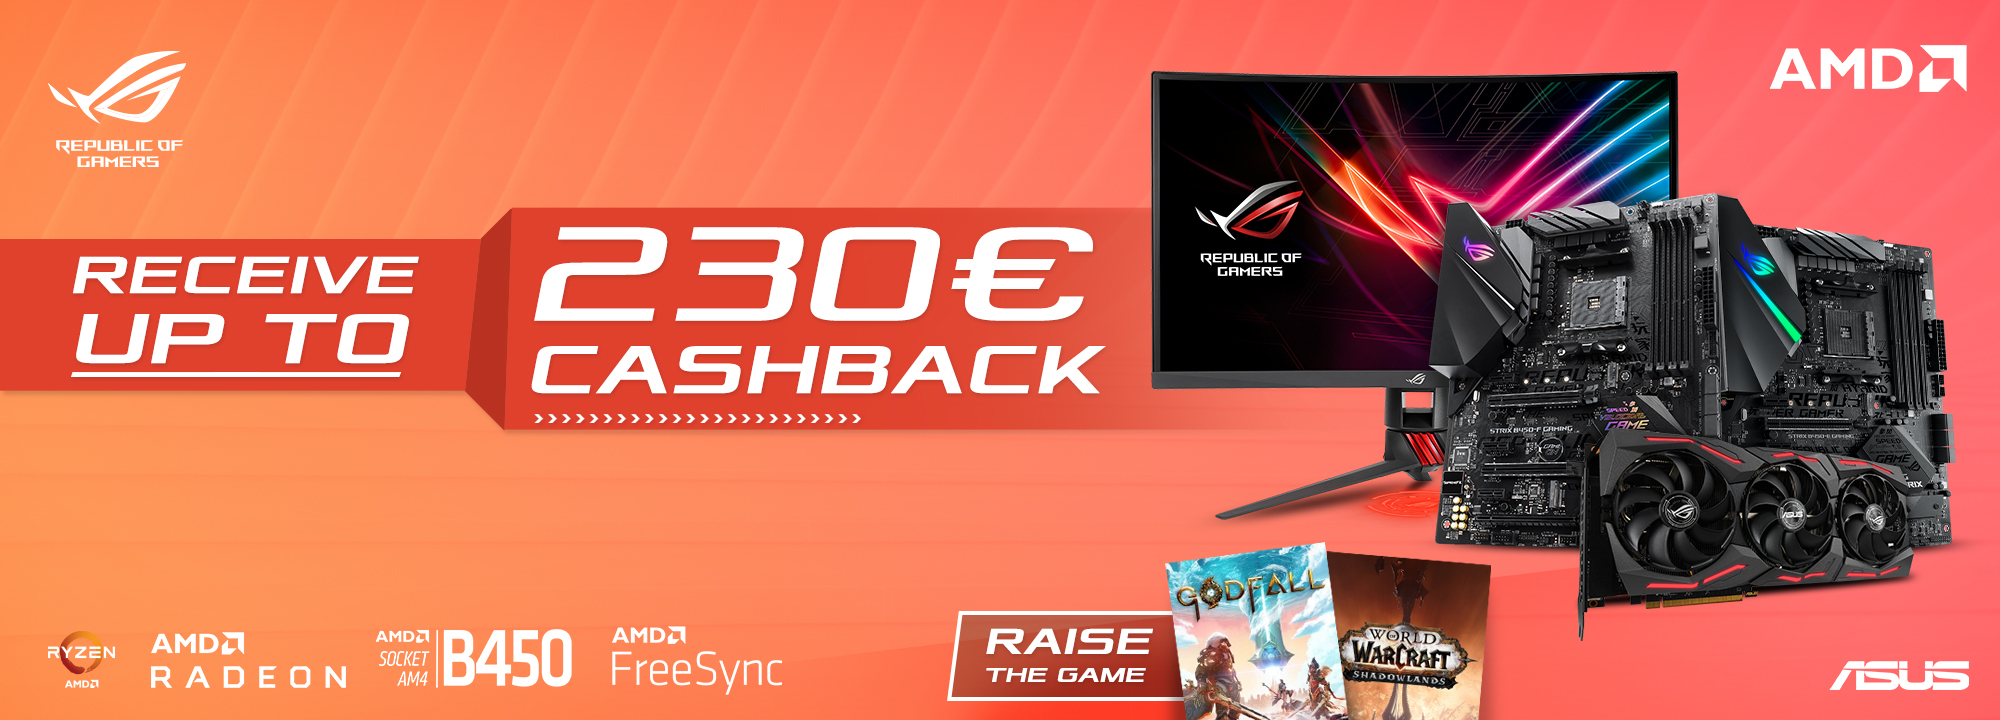 ASUS Graphics Cards, Motherboards and Monitors Cashback